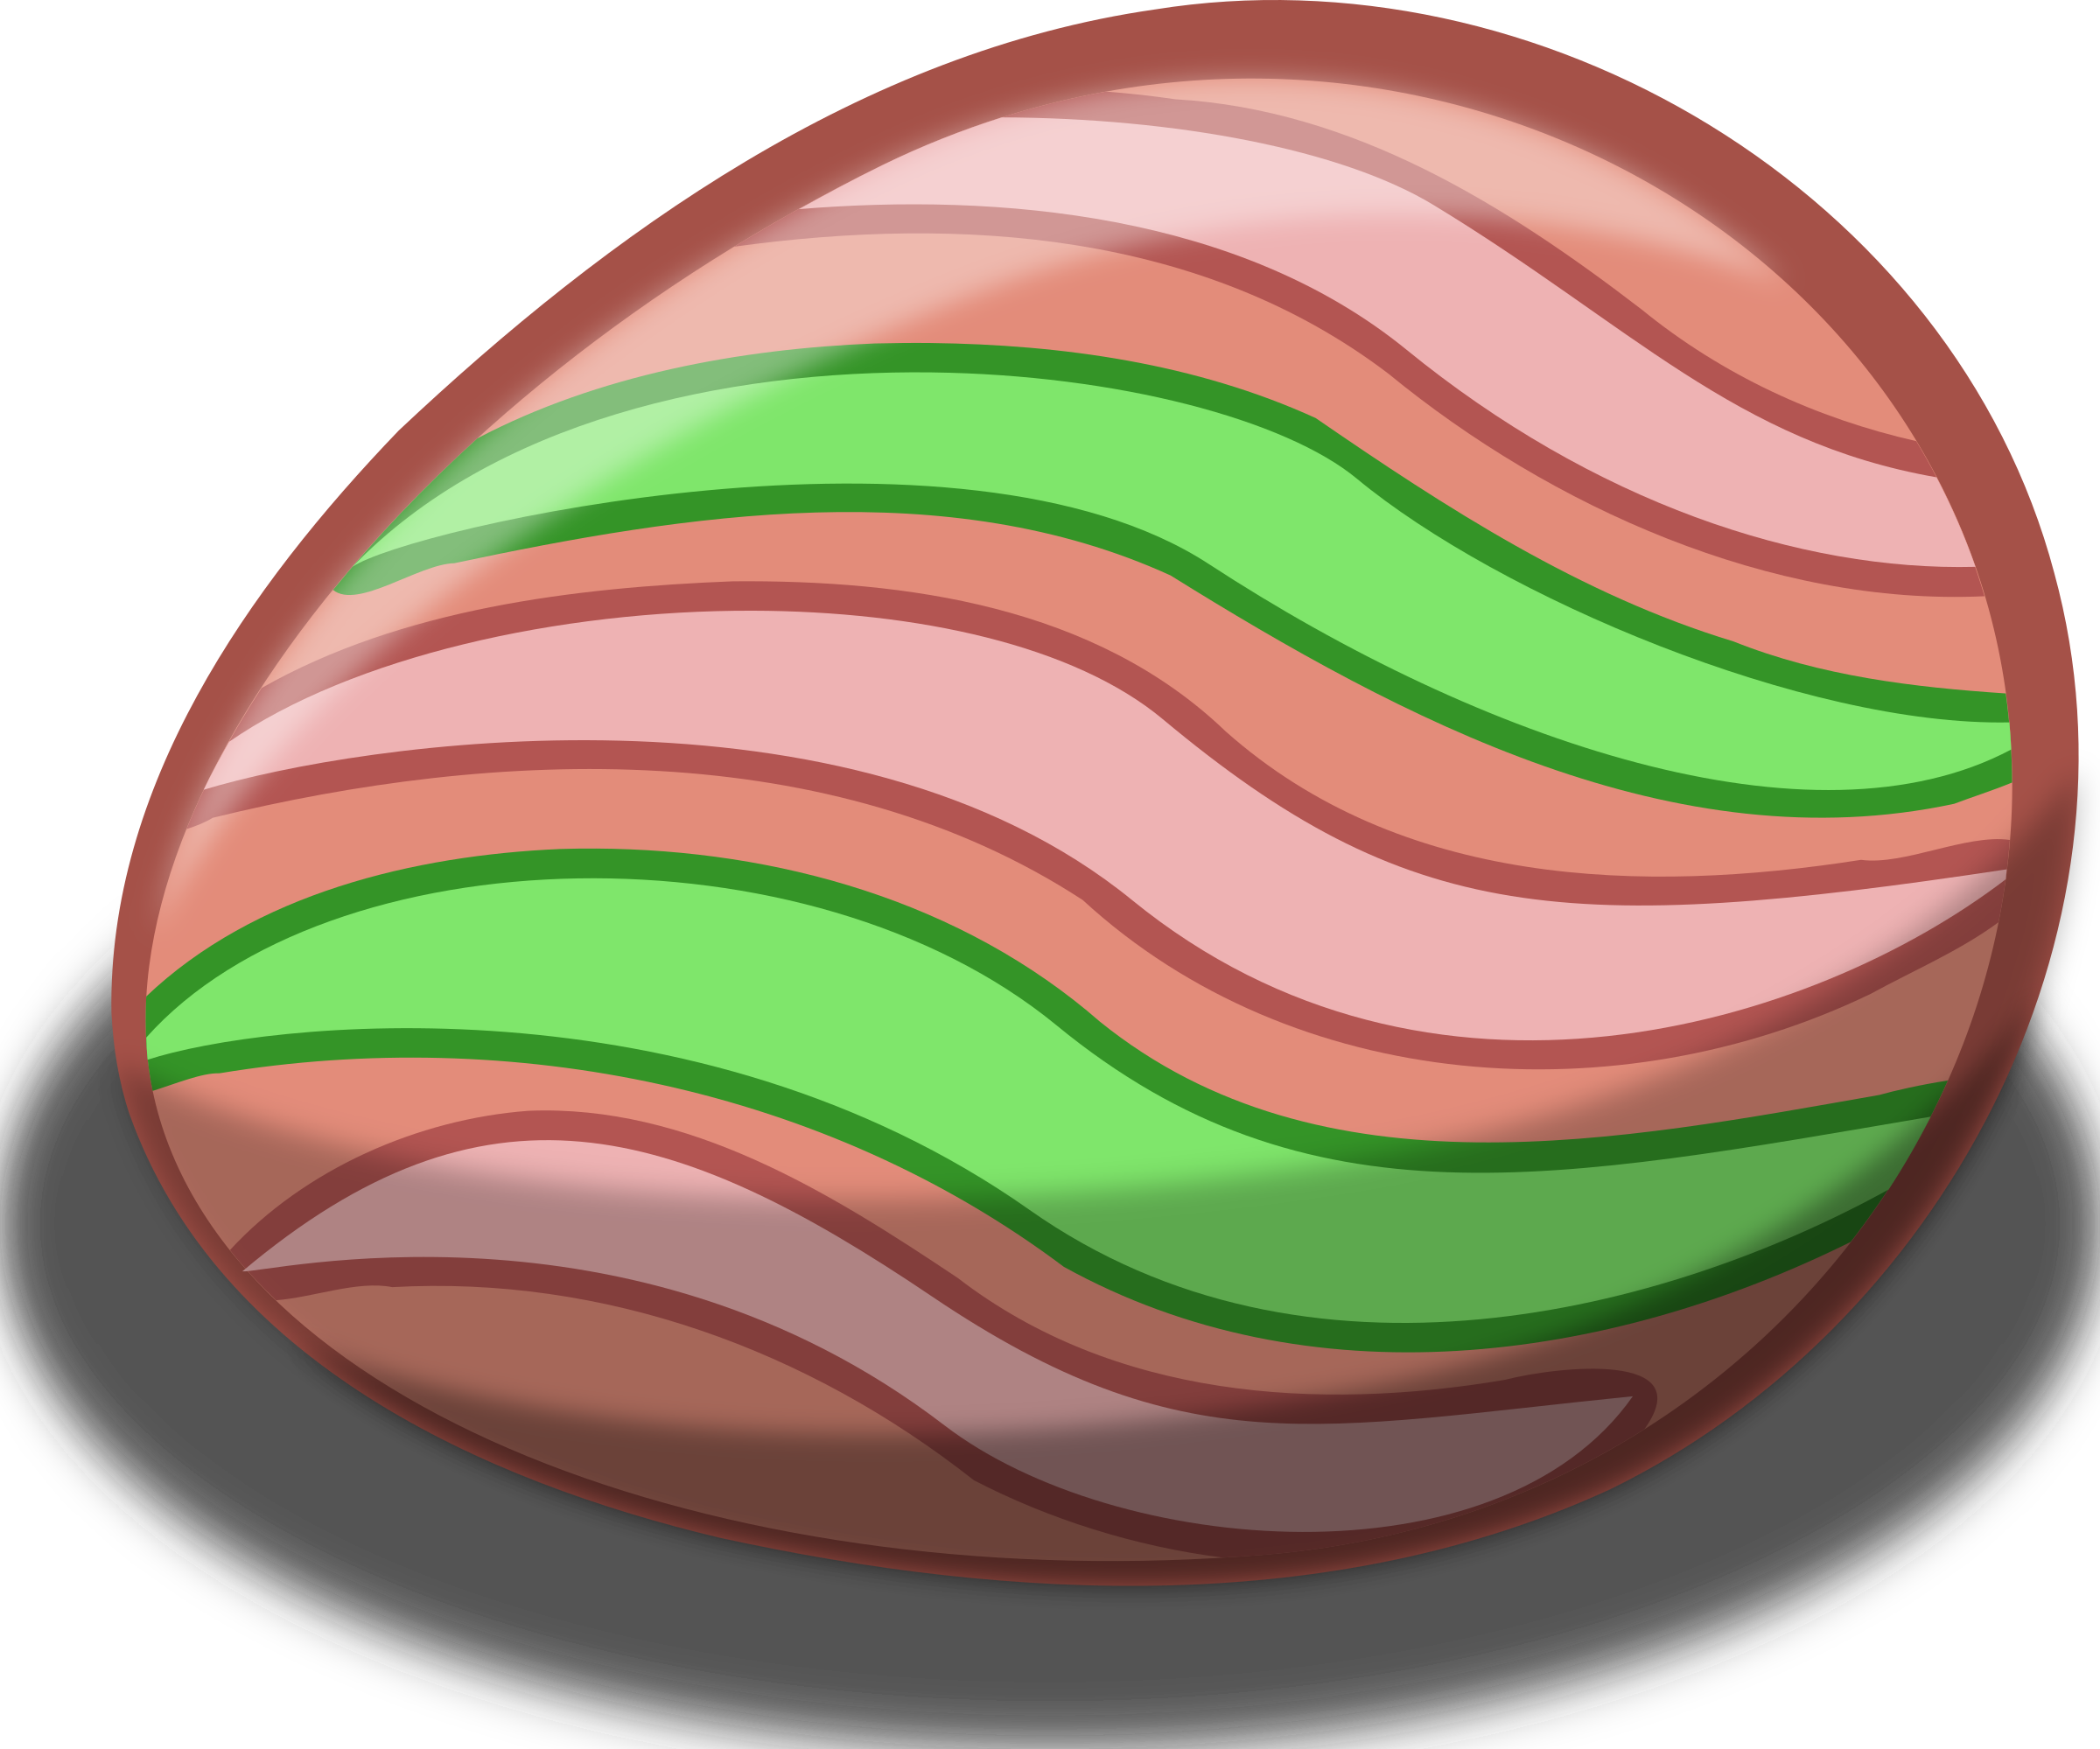 free stock photo of pink and green easter egg vector clipart